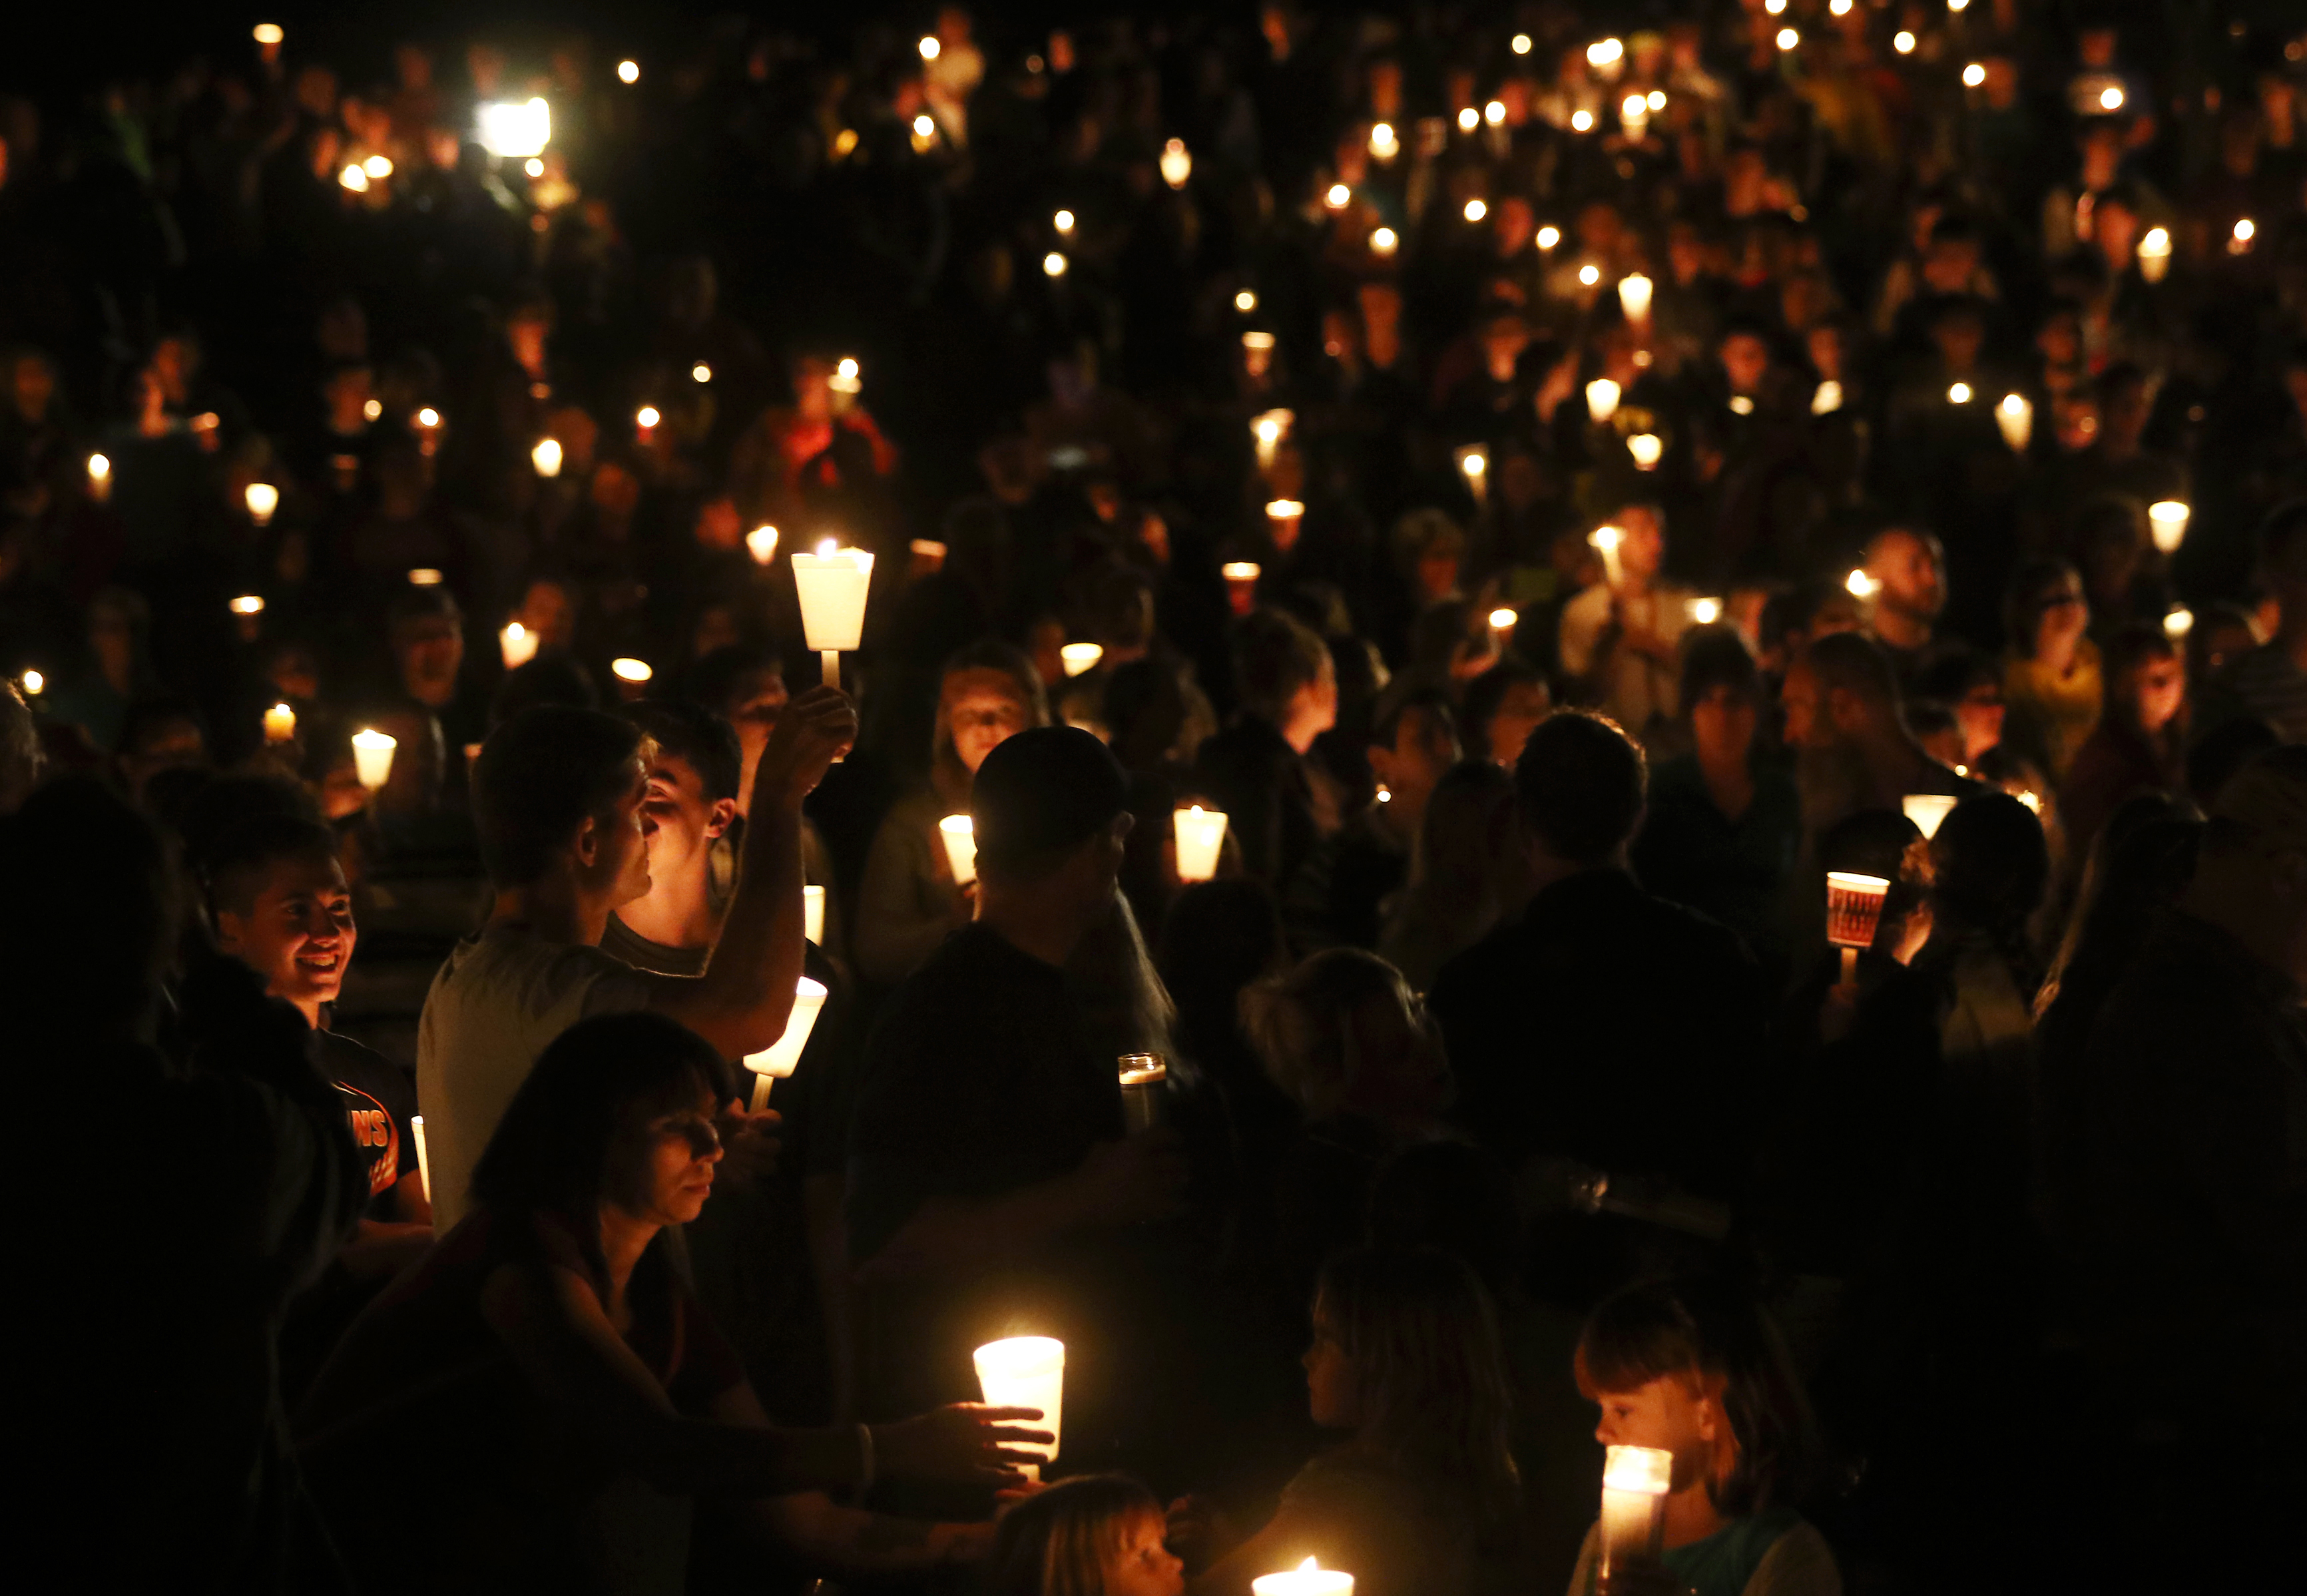 Community members attends a candlelight vigil for those killed during a shooting at Umpqua Community College in Roseburg, Ore., Thursday, Oct. 1, 2015. (Michael Sullivan/The News-Review via AP) MANDATORY CREDIT